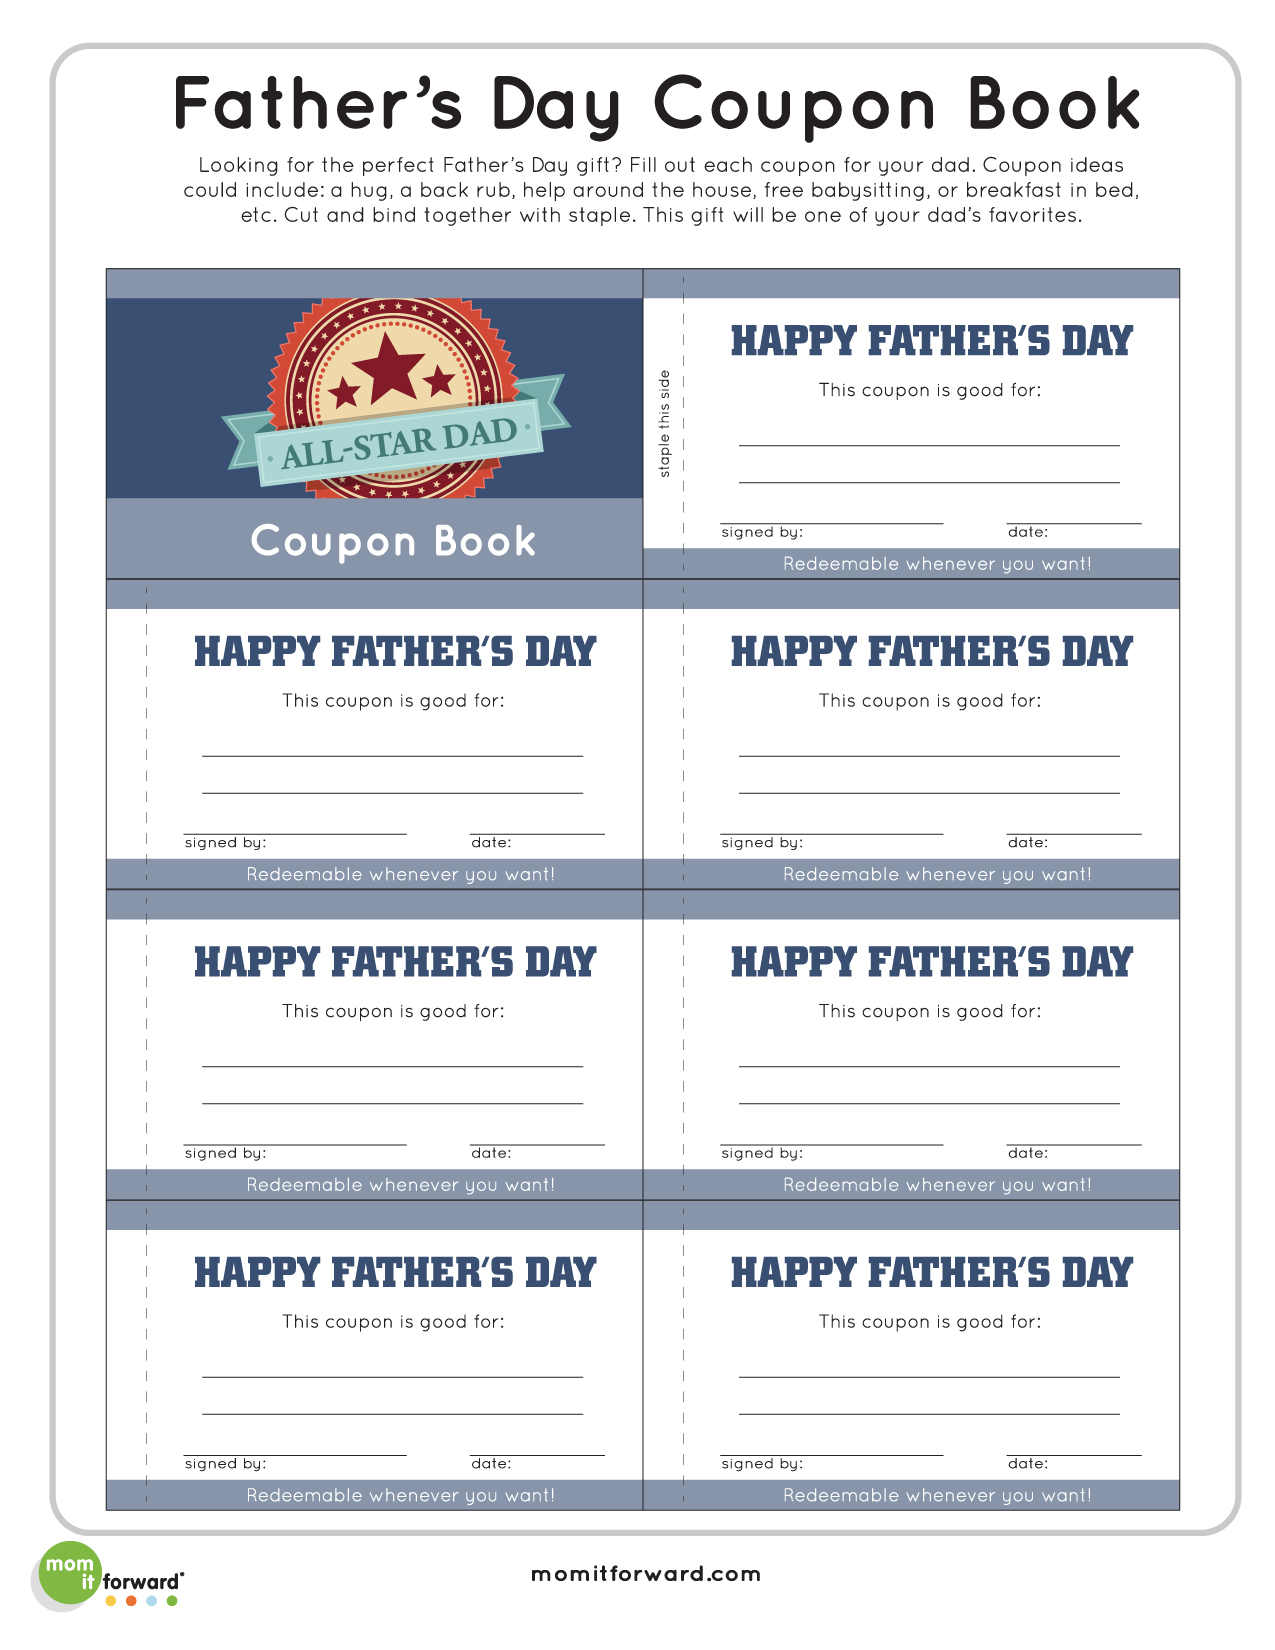 Father S Day Coupon Book Printablemom It Forward